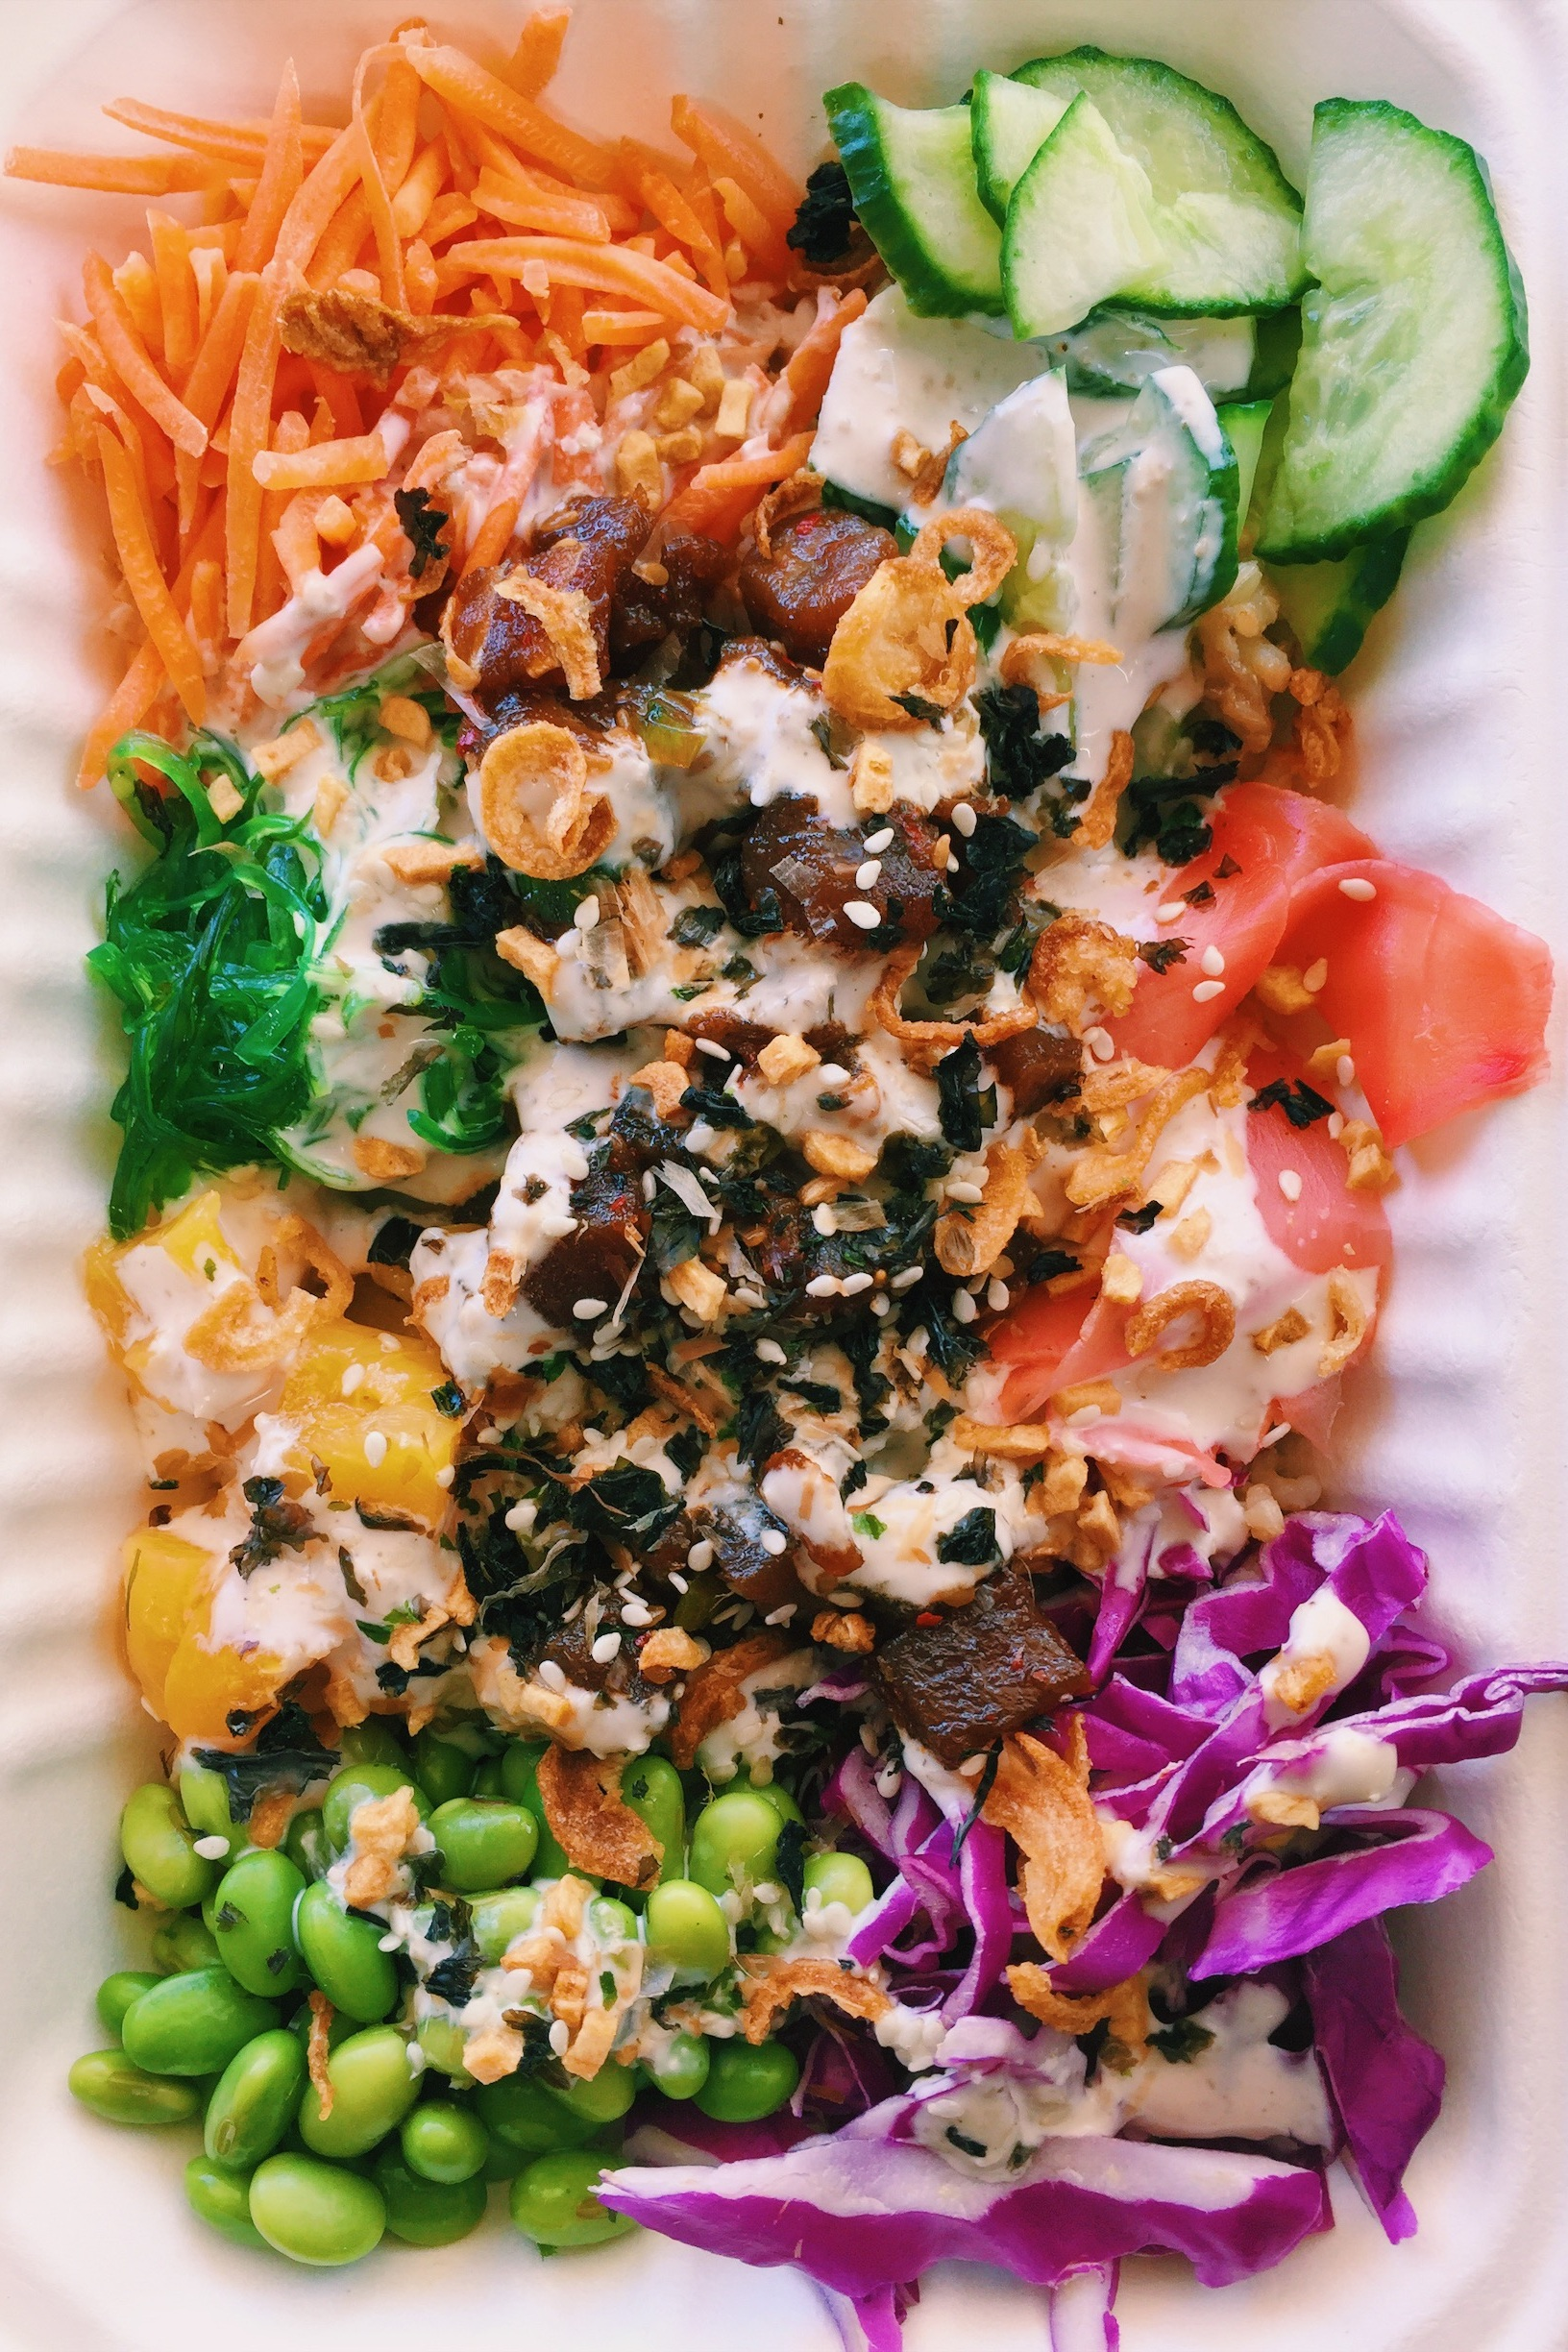 Sesame Tuna - Edamame, cucumber, purple cabbage, carrots, pickled ginger, seaweed salad, peaches, and tuna topped off with our Sesame Aioli sauce, fried onions, fried garlic and furikake.